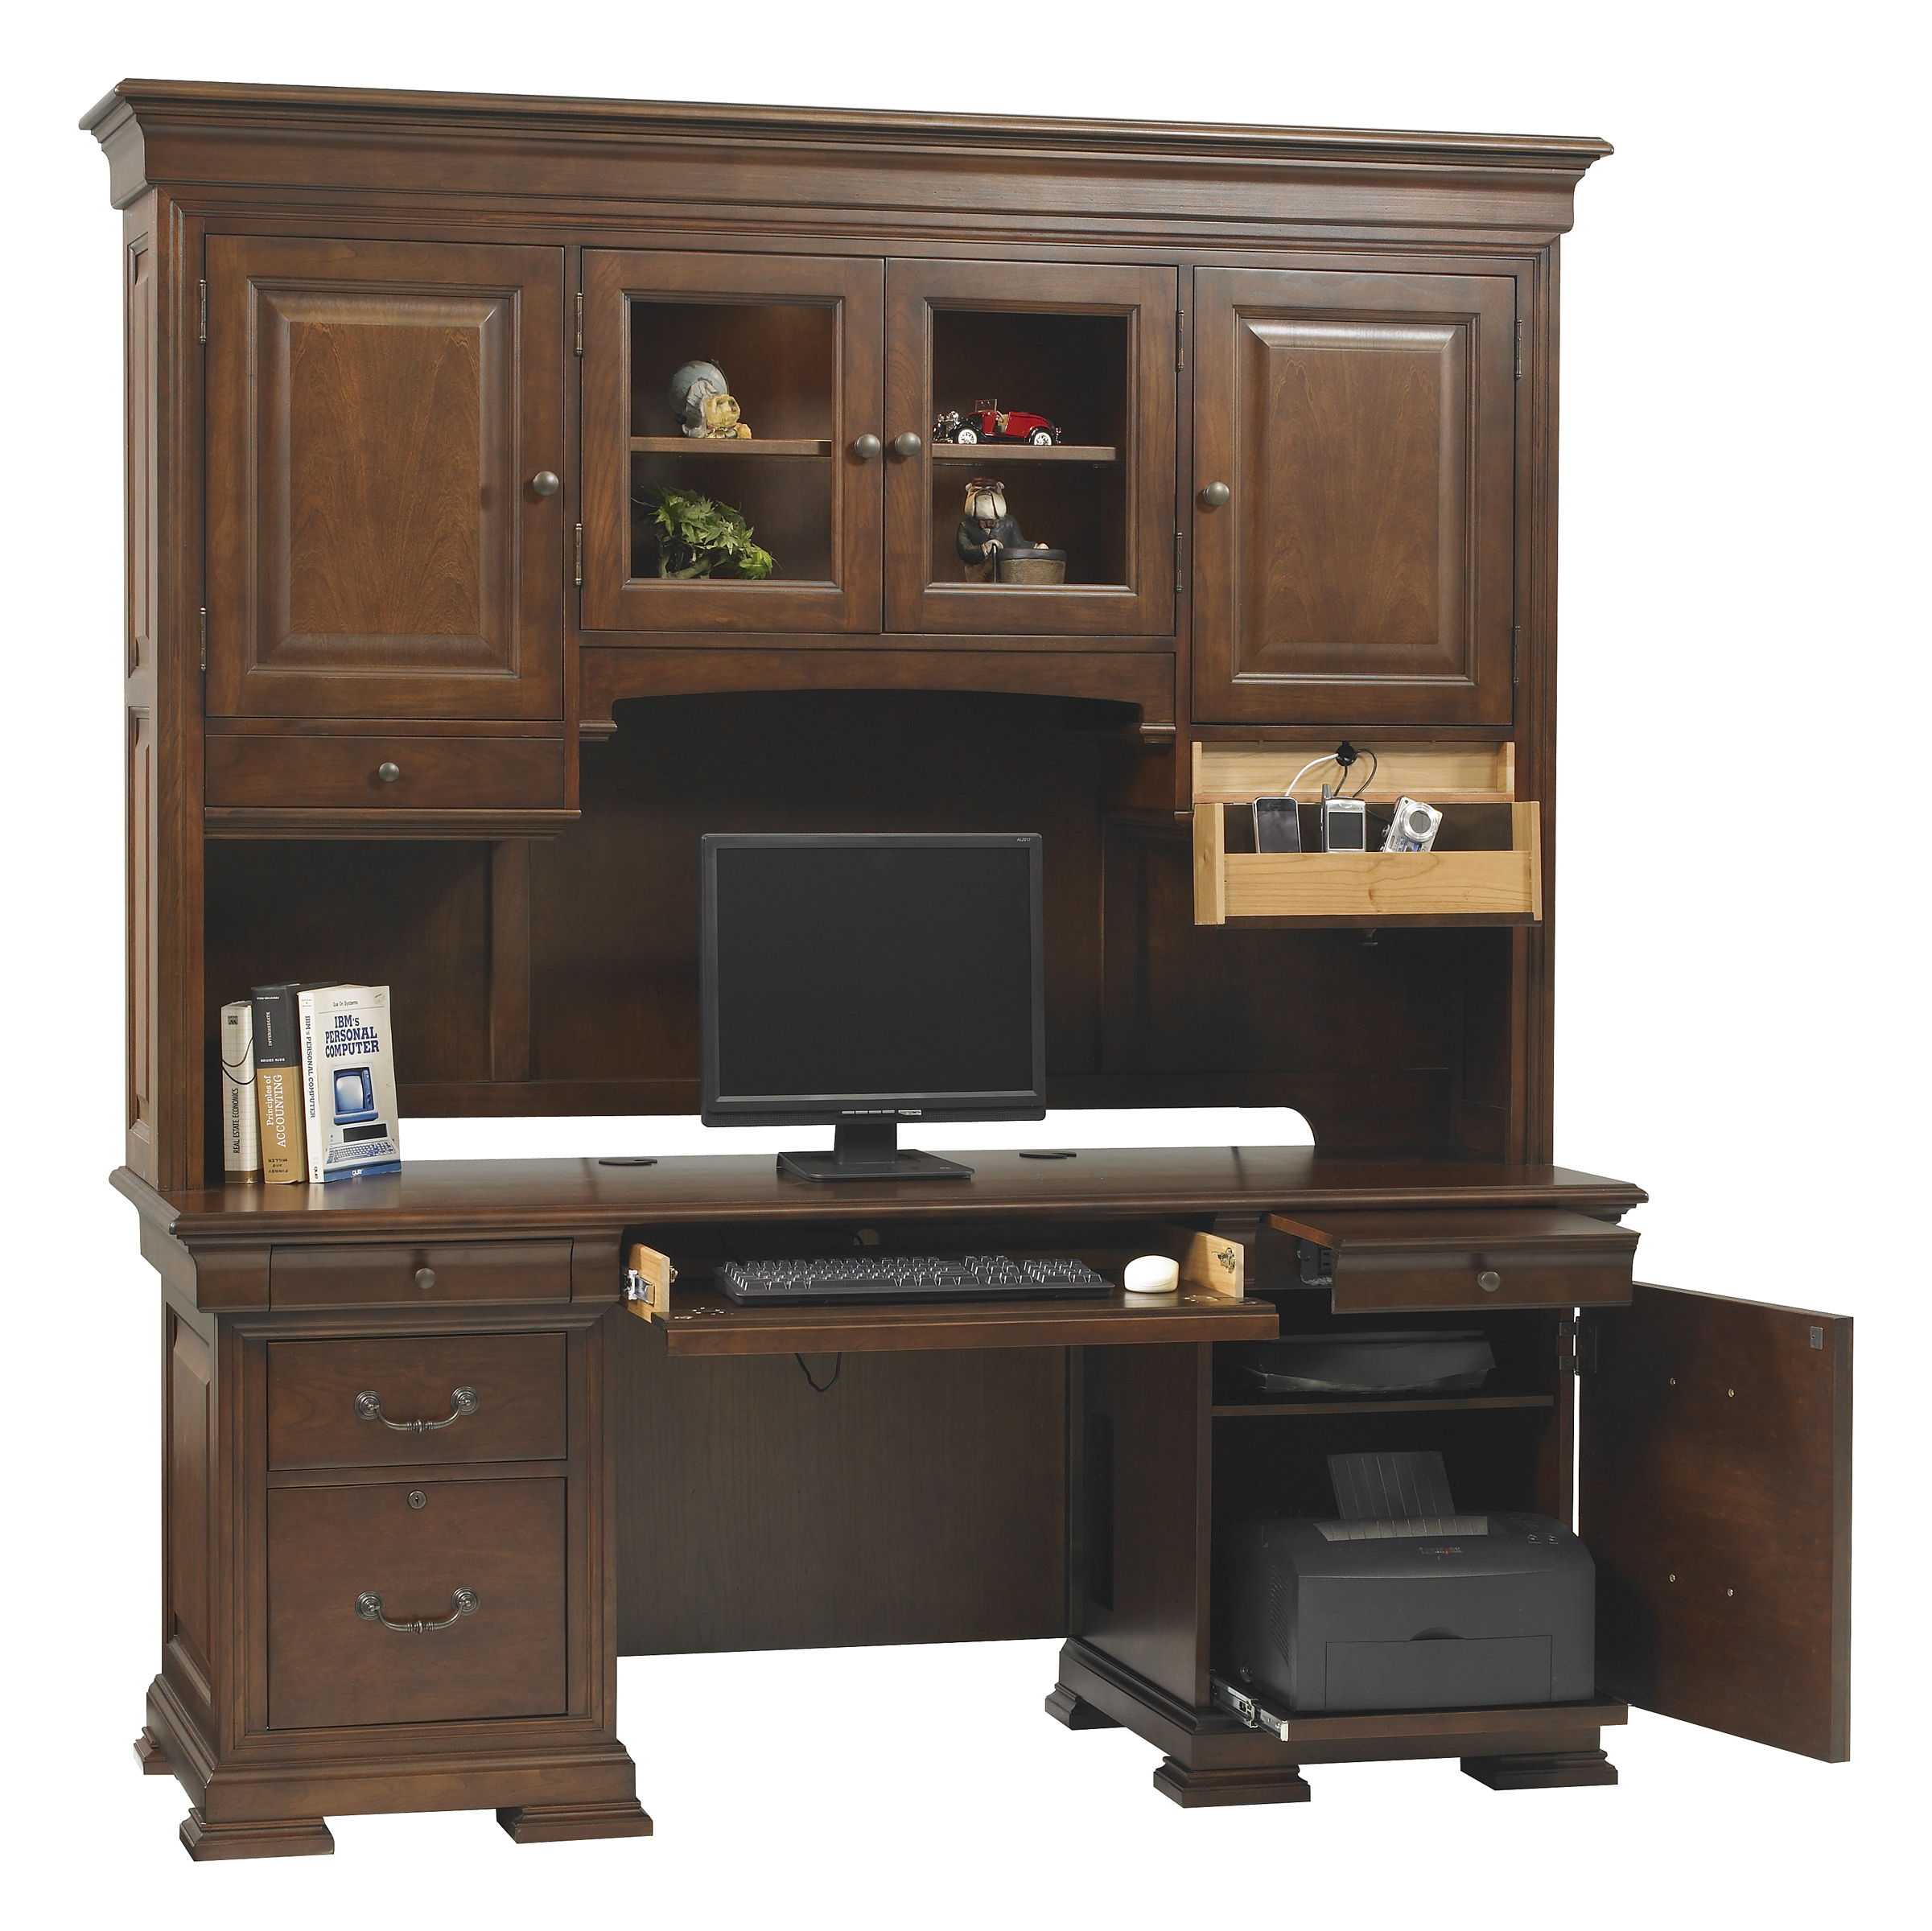 Home Office Sets  Guide To Winners Only Furniture. Natural Wood Chest Of Drawers. Japanese Desk Lamp. Front Load Washer Drawer. Surfboard Drawer Pulls. Stone Drawer Knobs. Desk Bed Combination. Air Hockey Table Costco. Dual Monitor Computer Desk